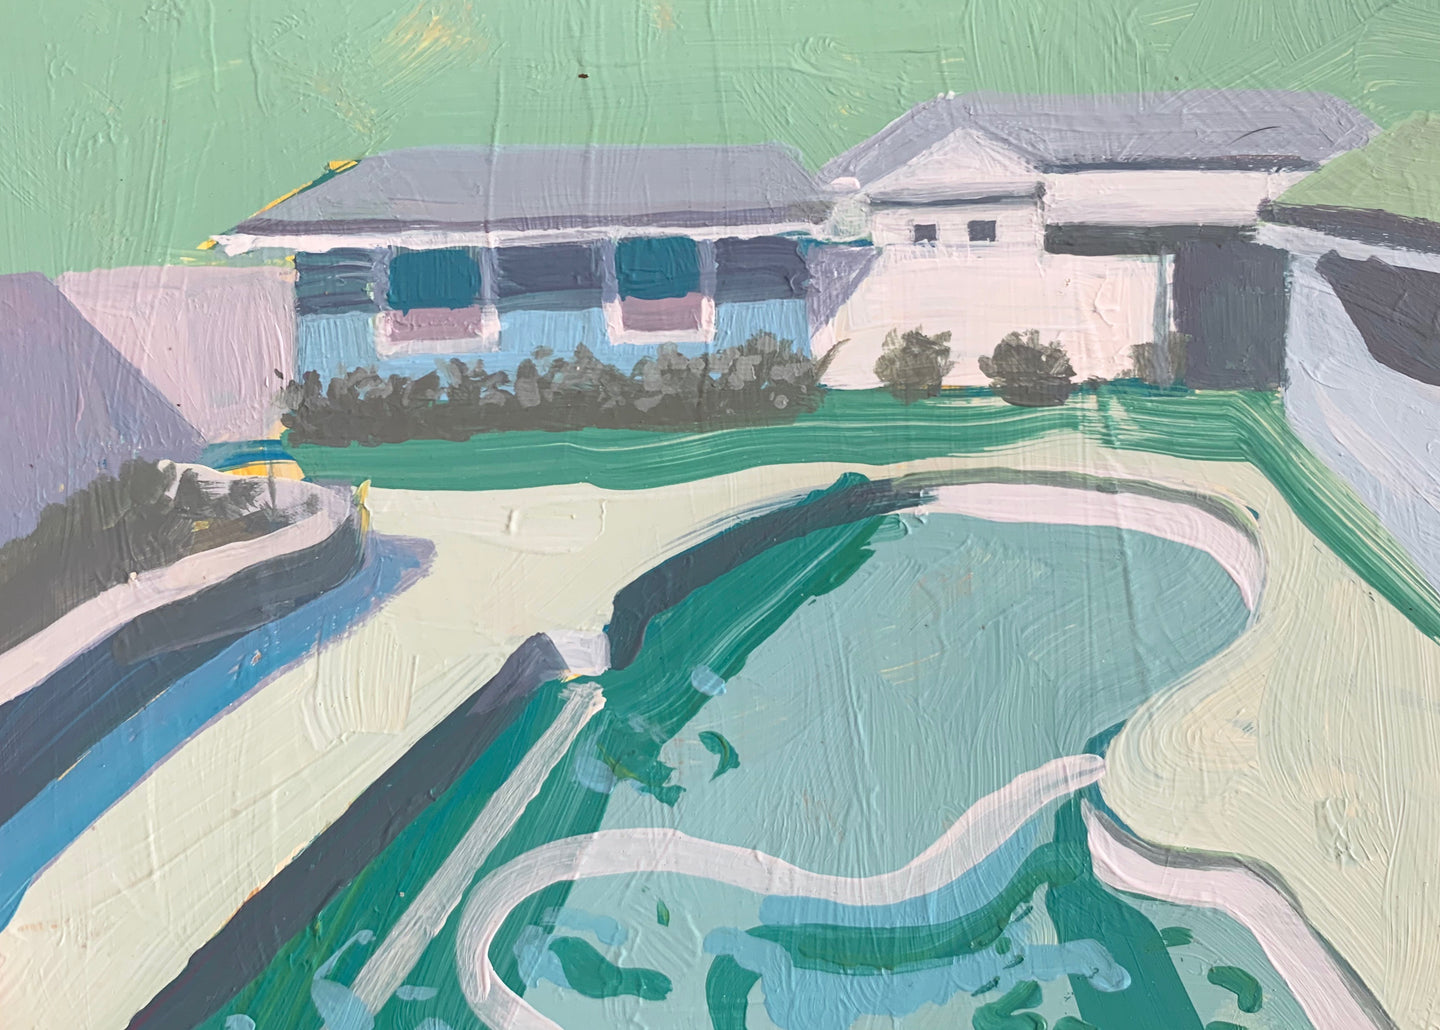 Pool House in Teal, 5